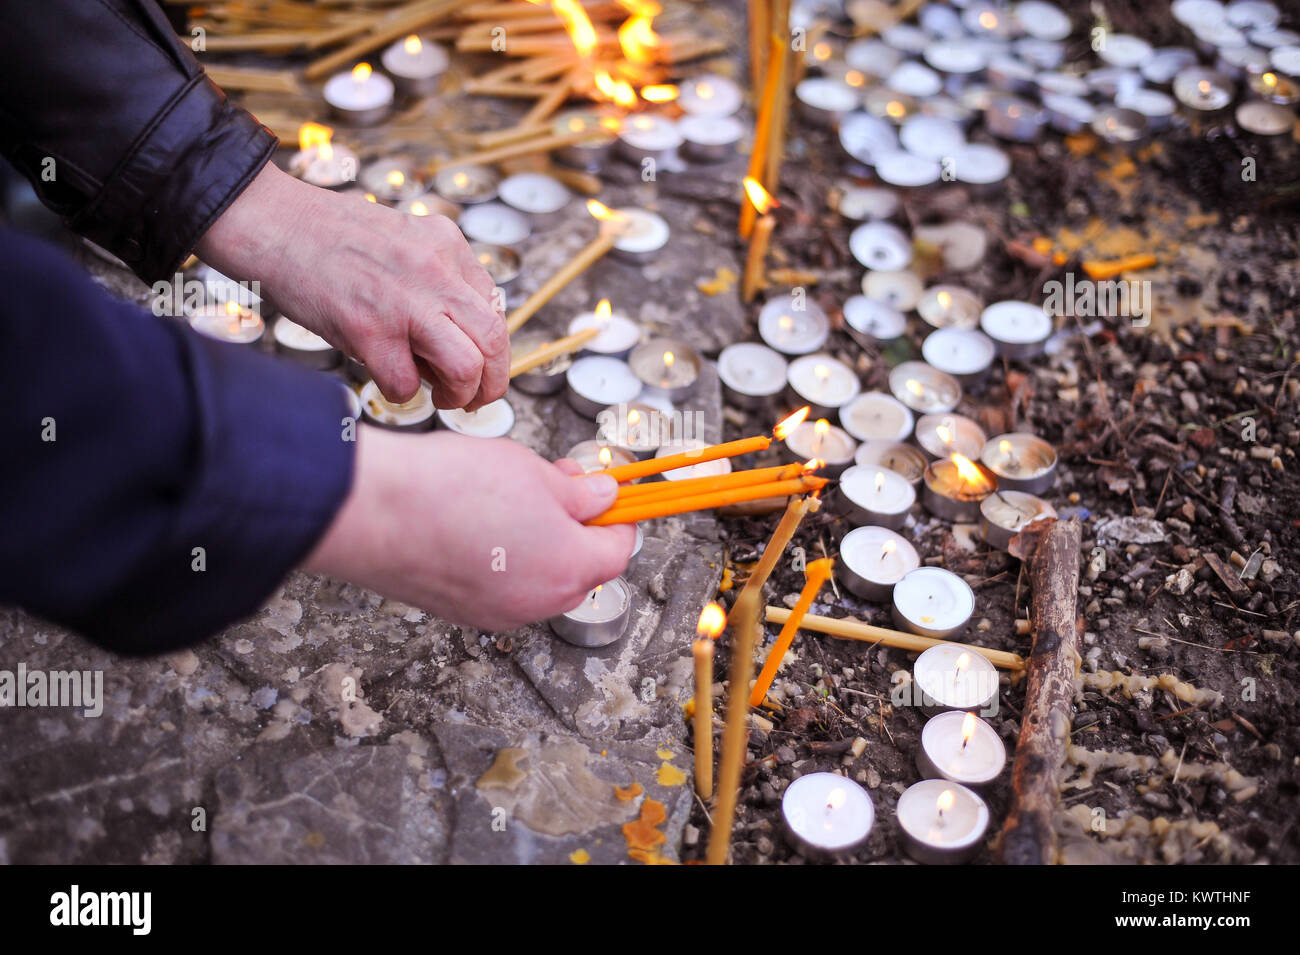 People light candles in a church yard celebrating an christian orthodox saint - Stock Image